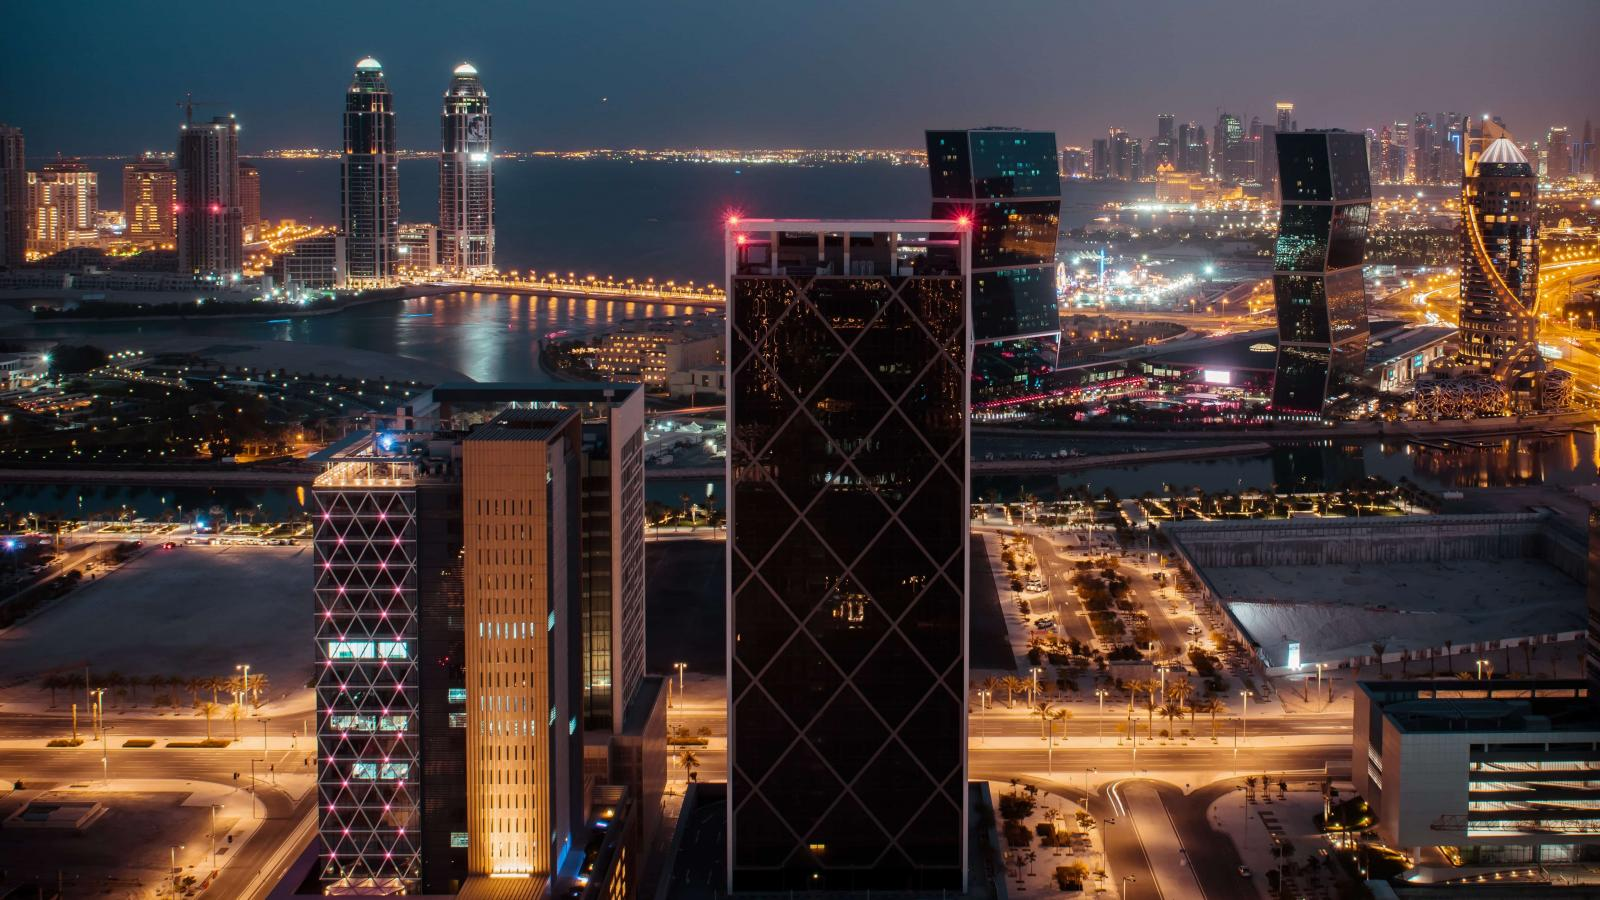 The breathtaking beauty of Lusail, Qatar's city of the future